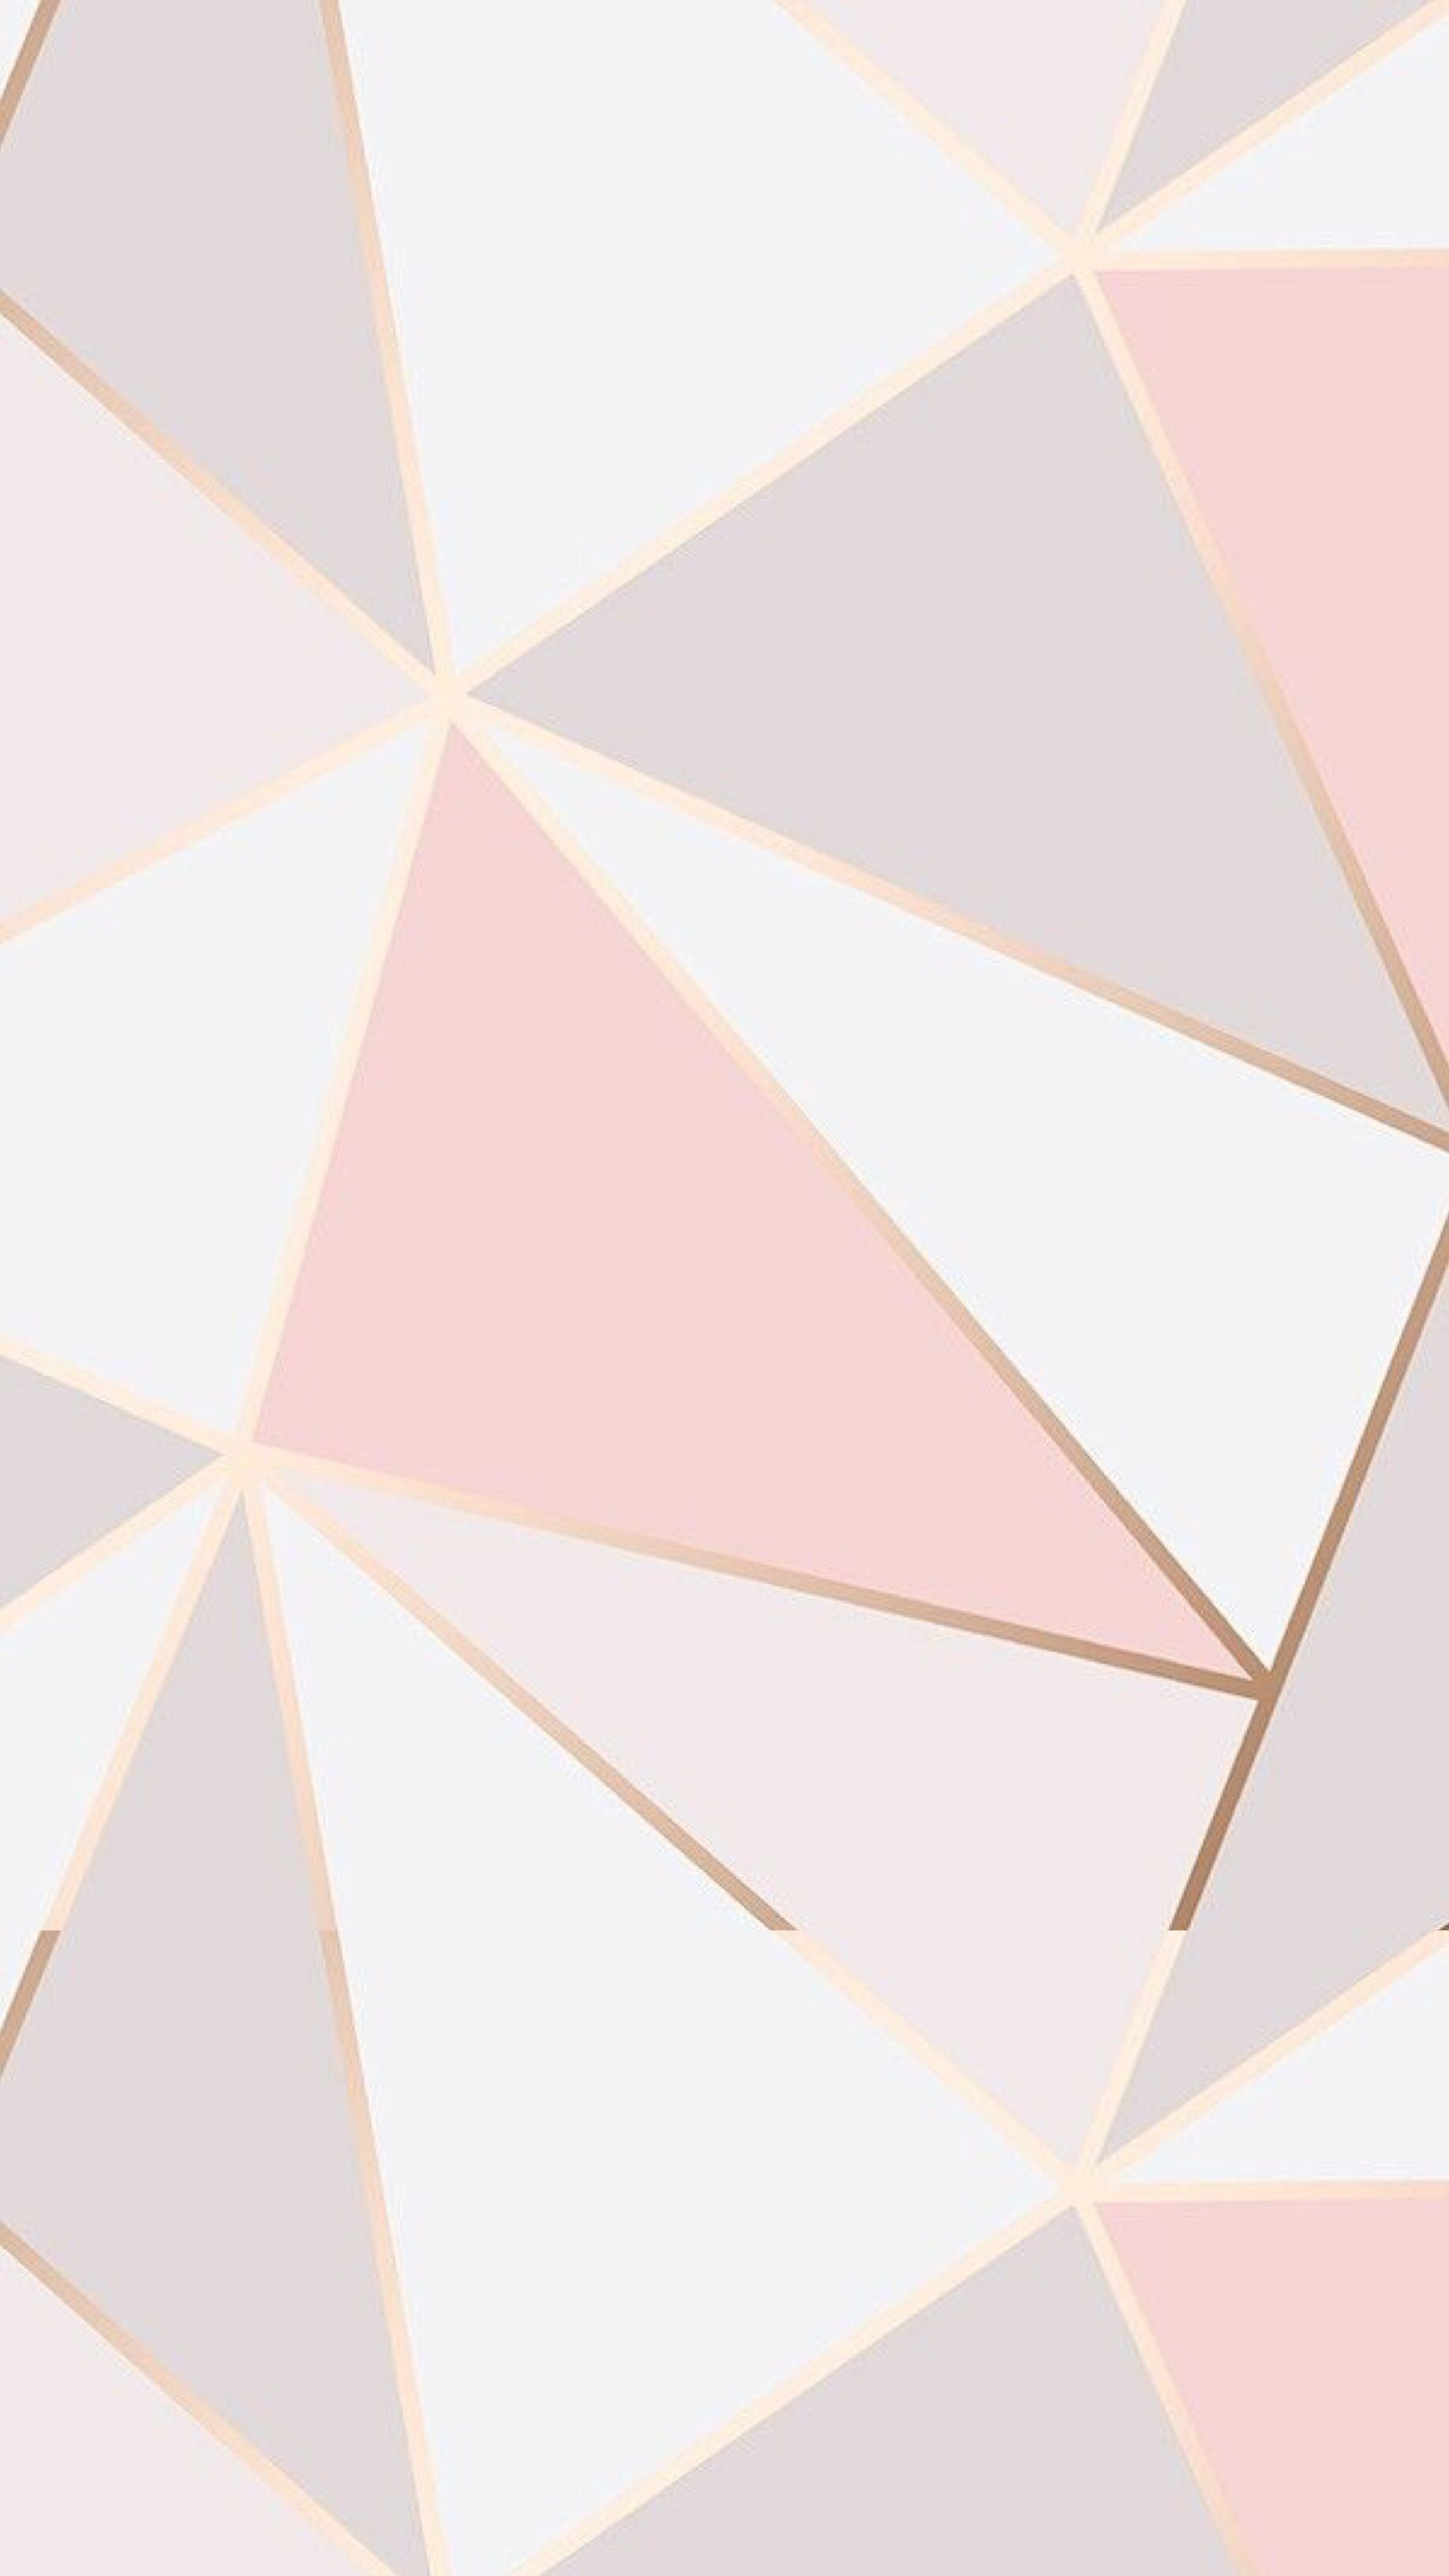 Res: 1836x3264, wallpapers for android and iphone, download geometric phone background